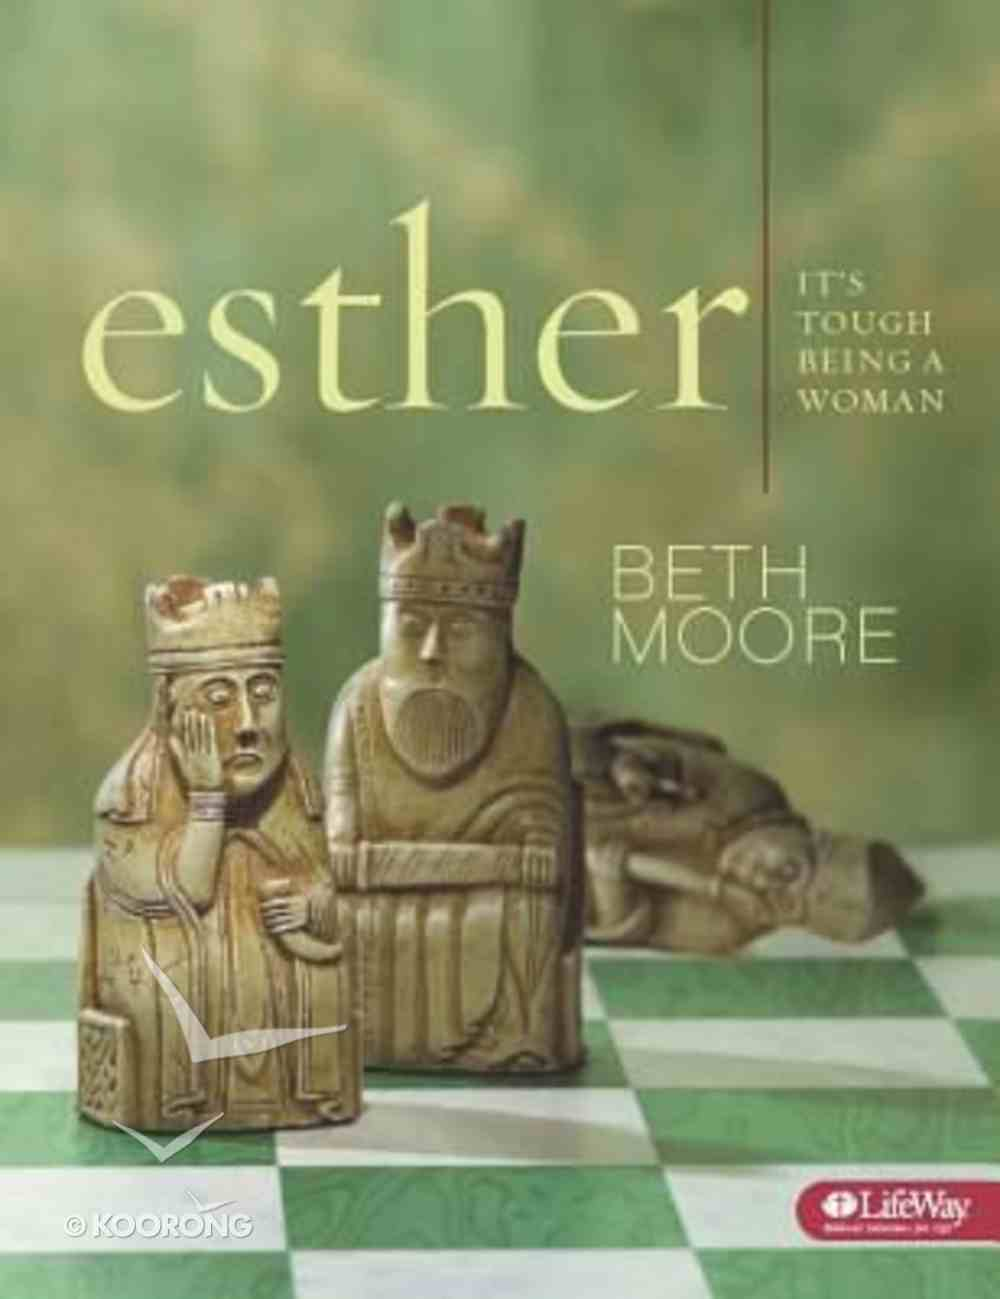 Esther - It's Tough Being a Woman (Audio CD Set) (Beth Moore Bible Study Audio Series) CD